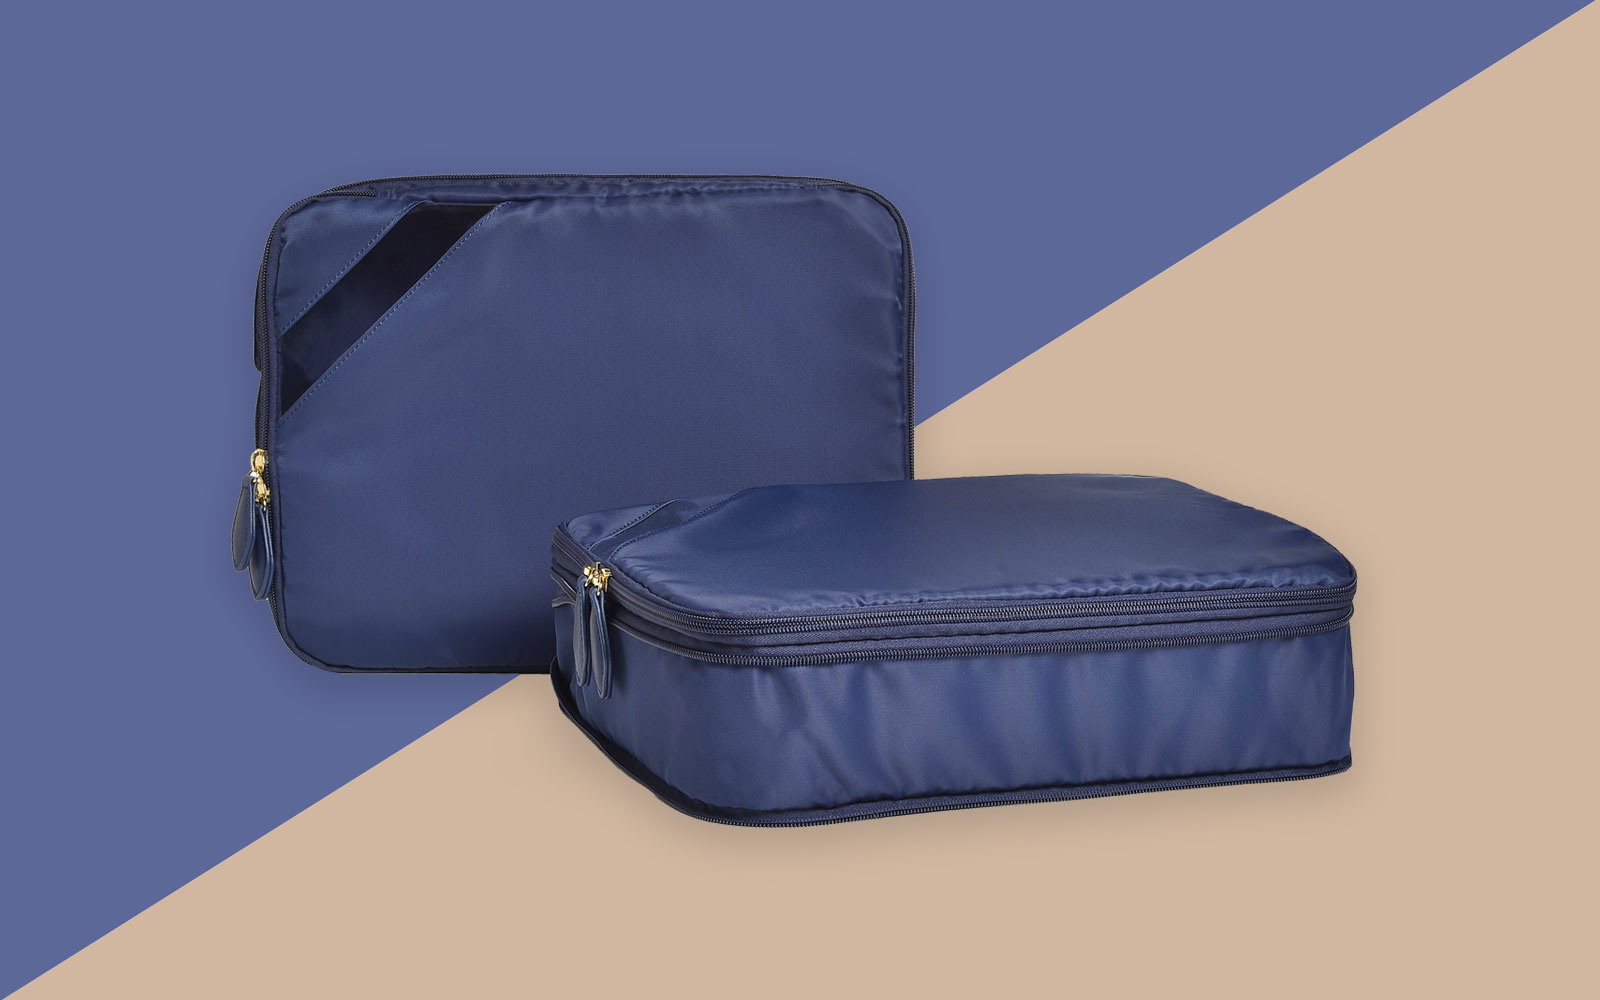 Navy packing cubes